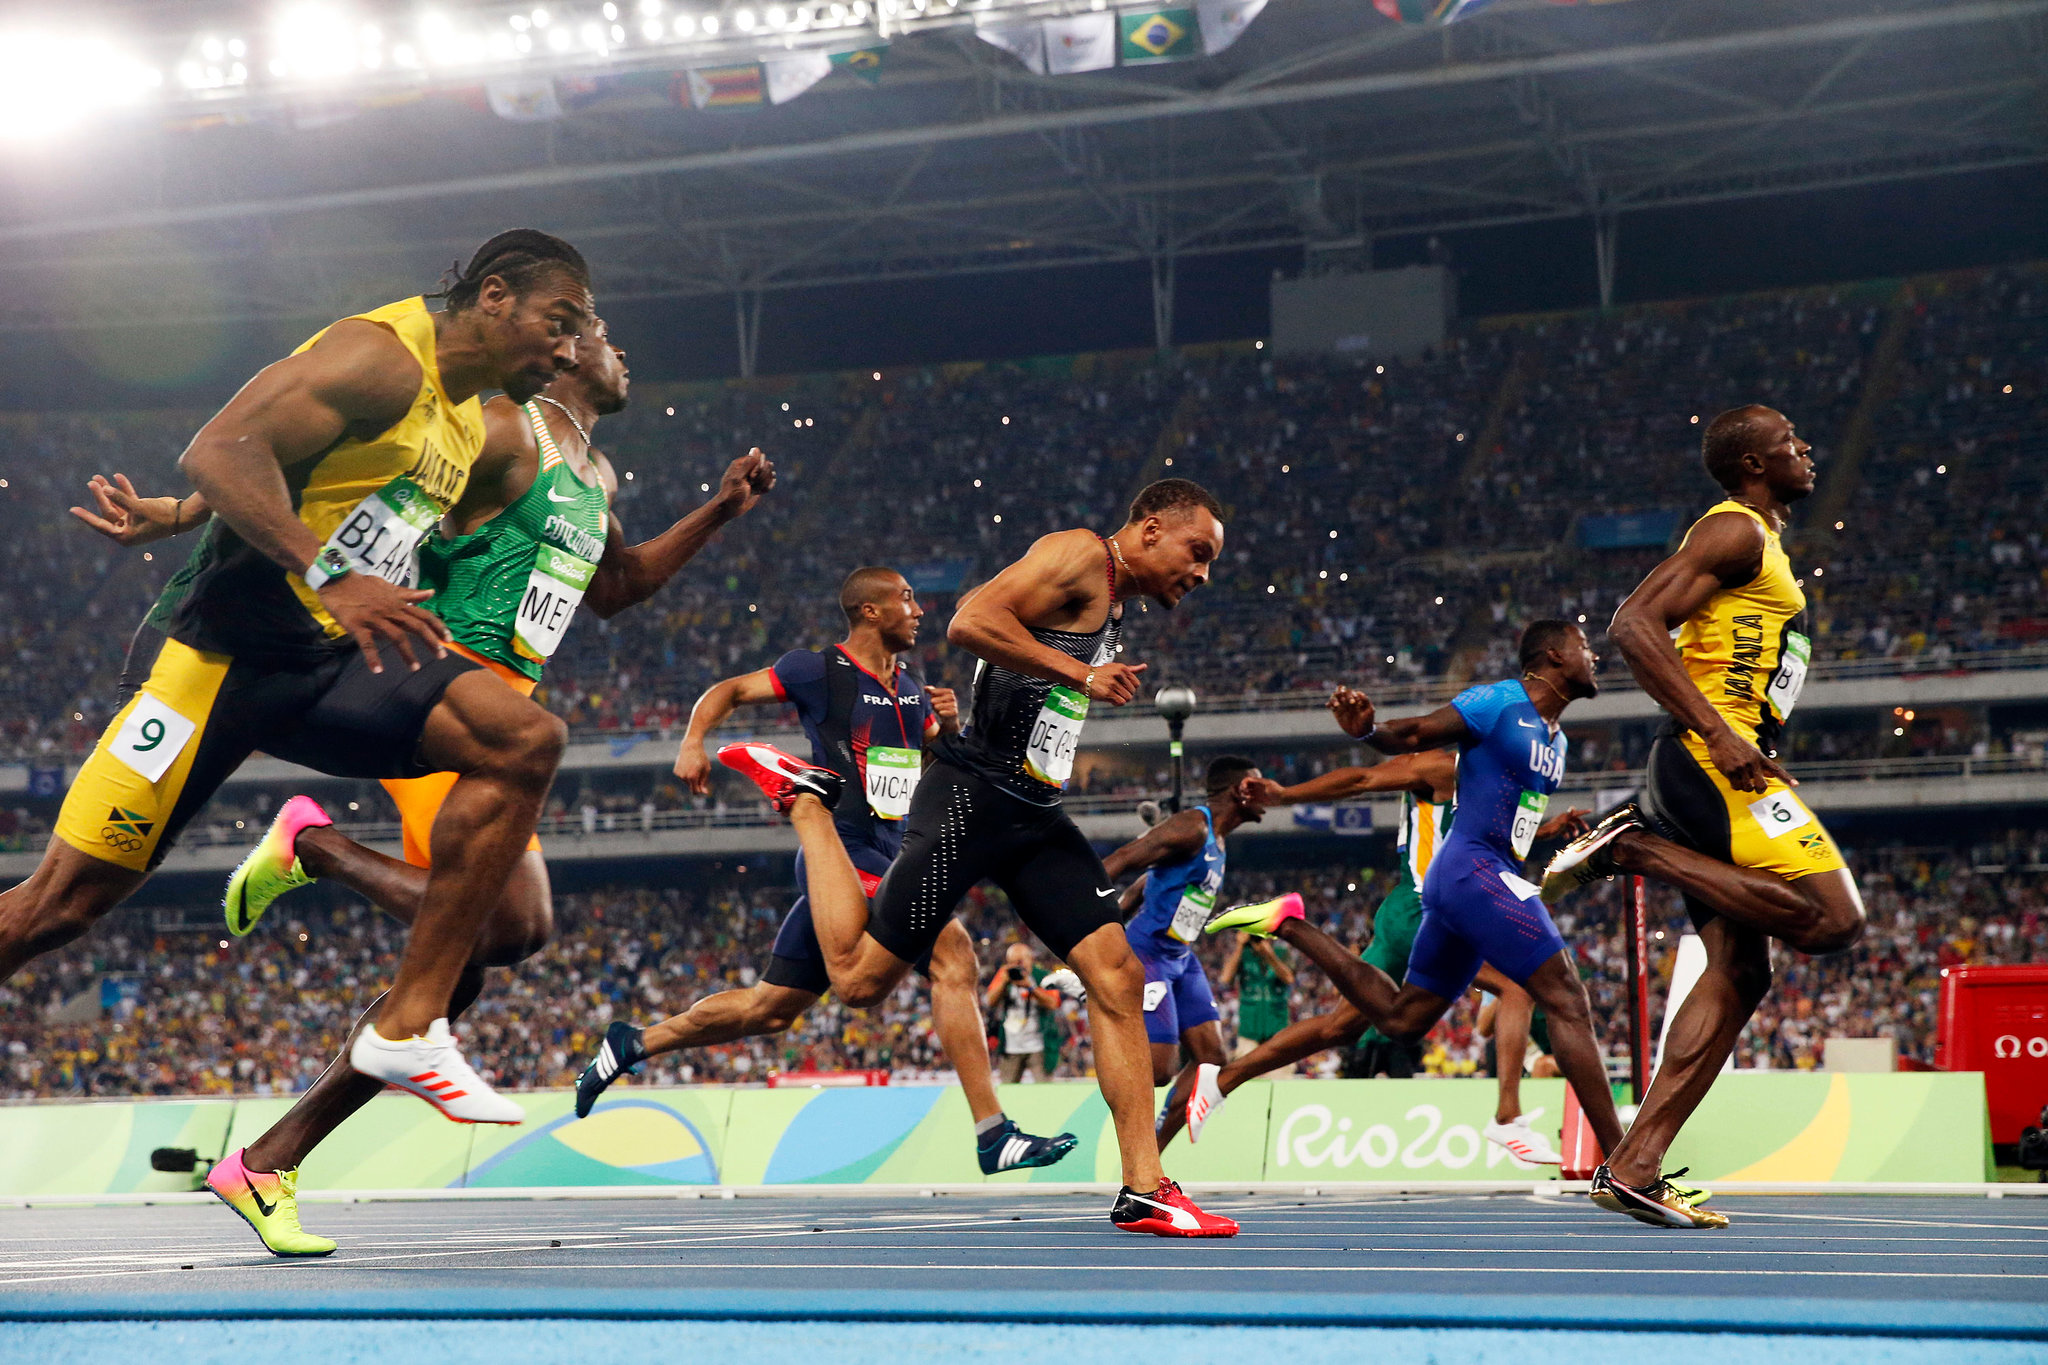 usain bolt finishing